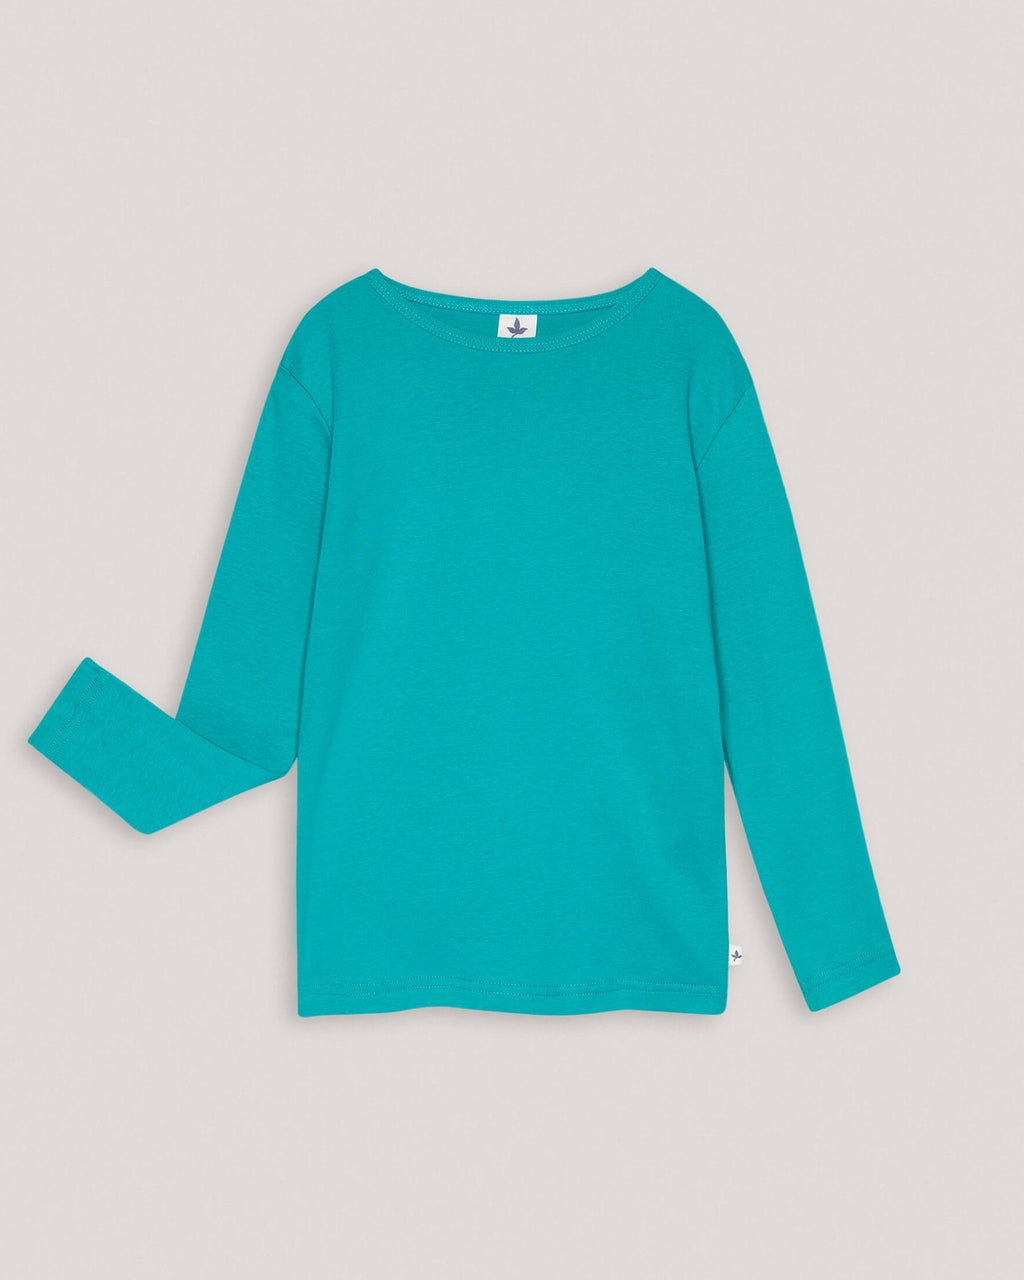 variant_2 | EN Organic Green basic longsleeve sweater for babies and kids | DE Bio Grüner langarmliger sweater für babies und kids